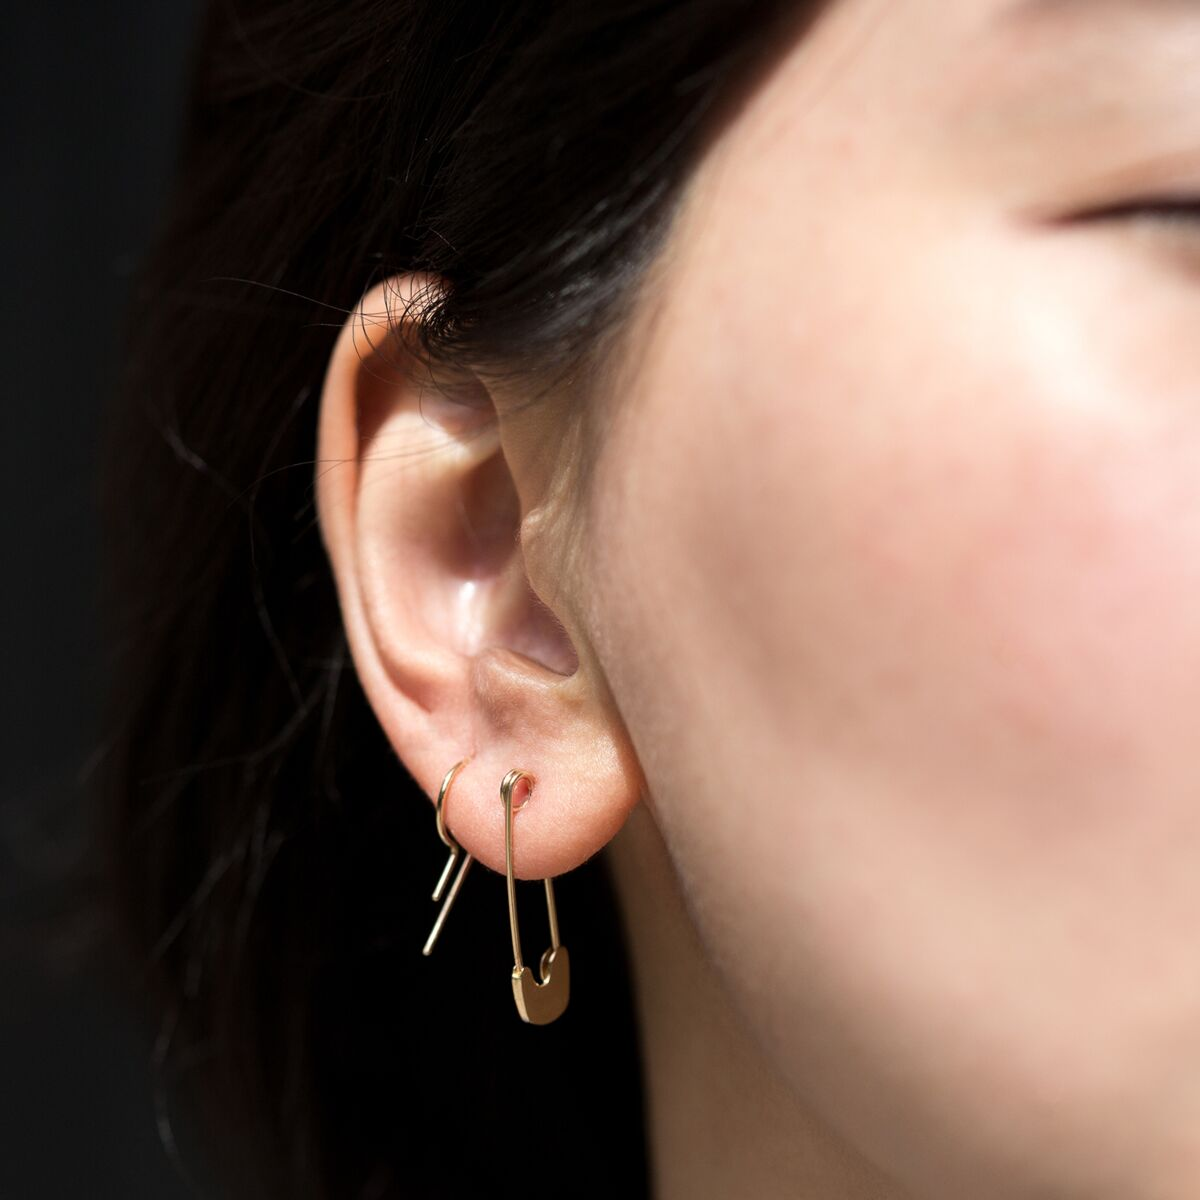 Loopdie Earring Gold (Single) image